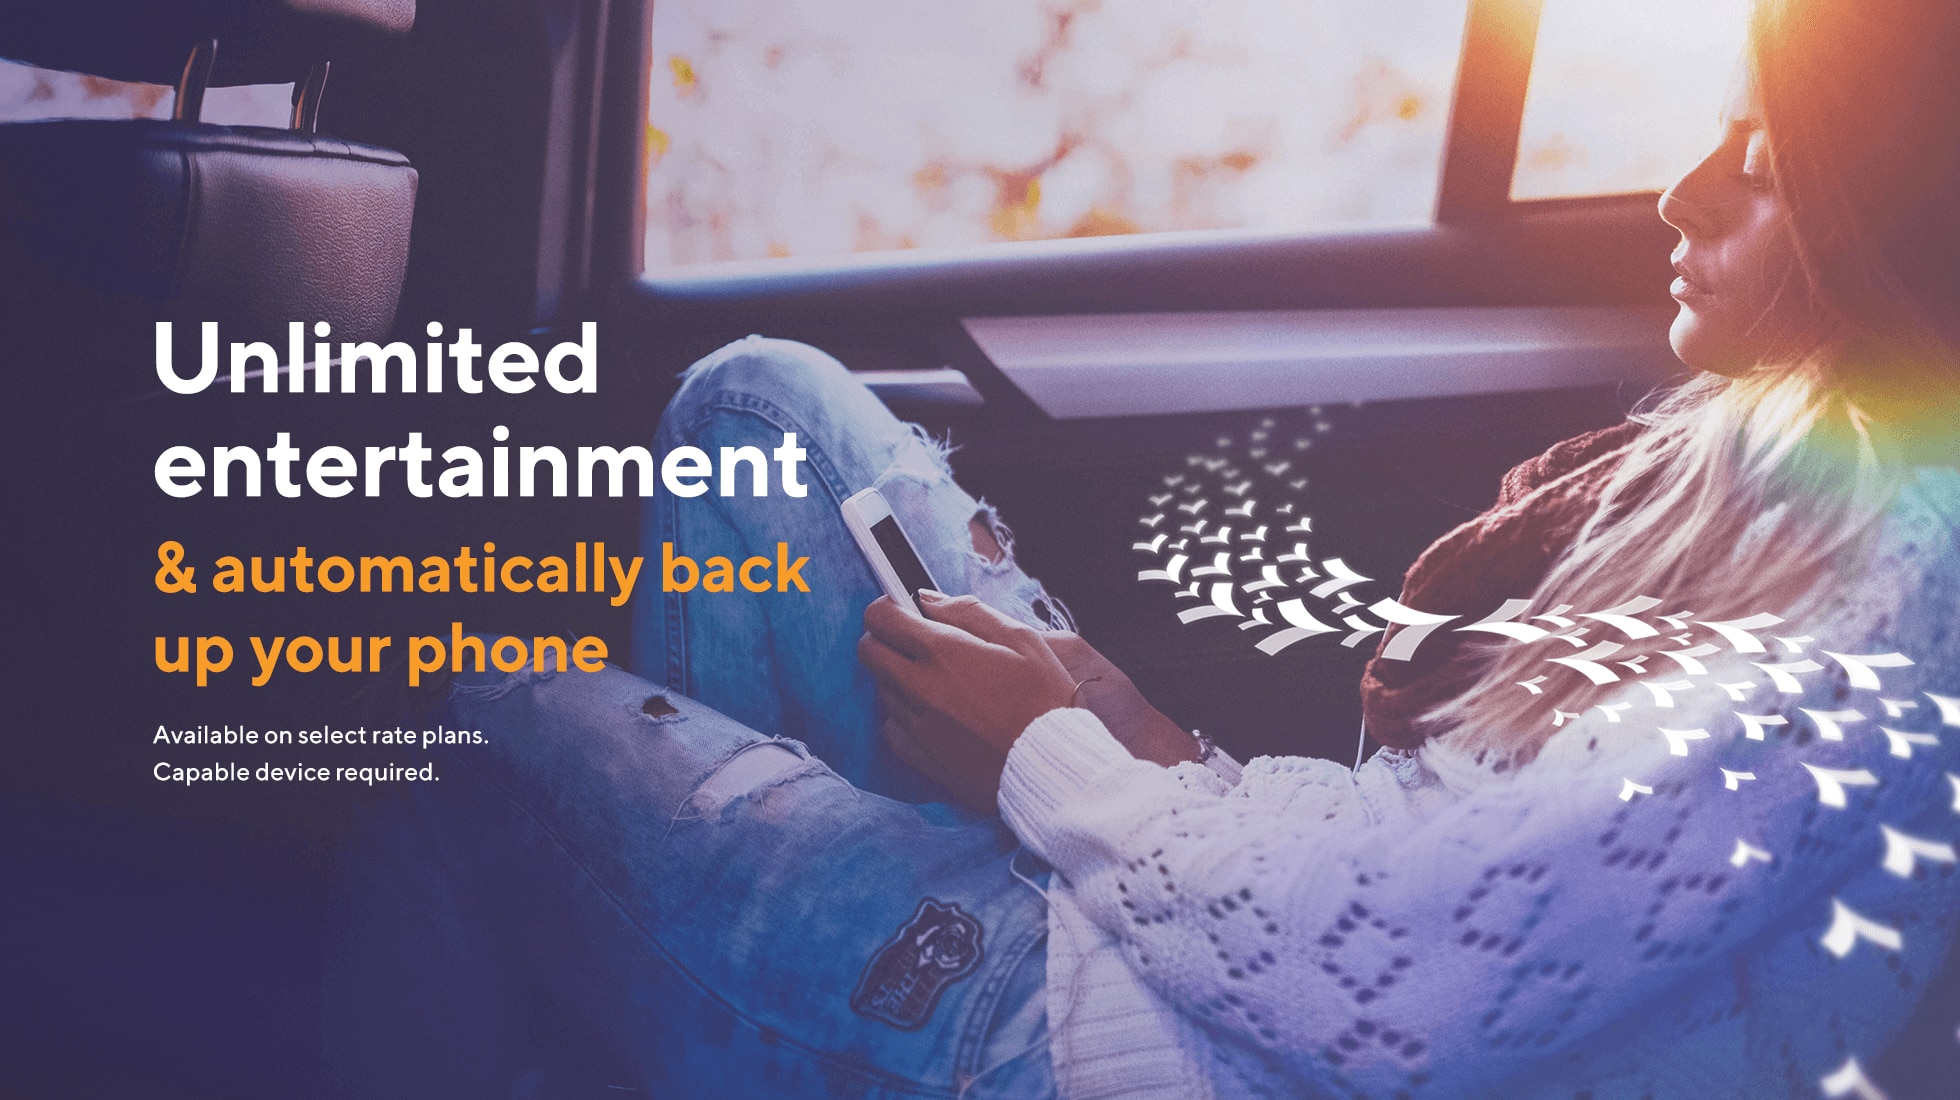 Unlimited entertainment and automatically back up your phone